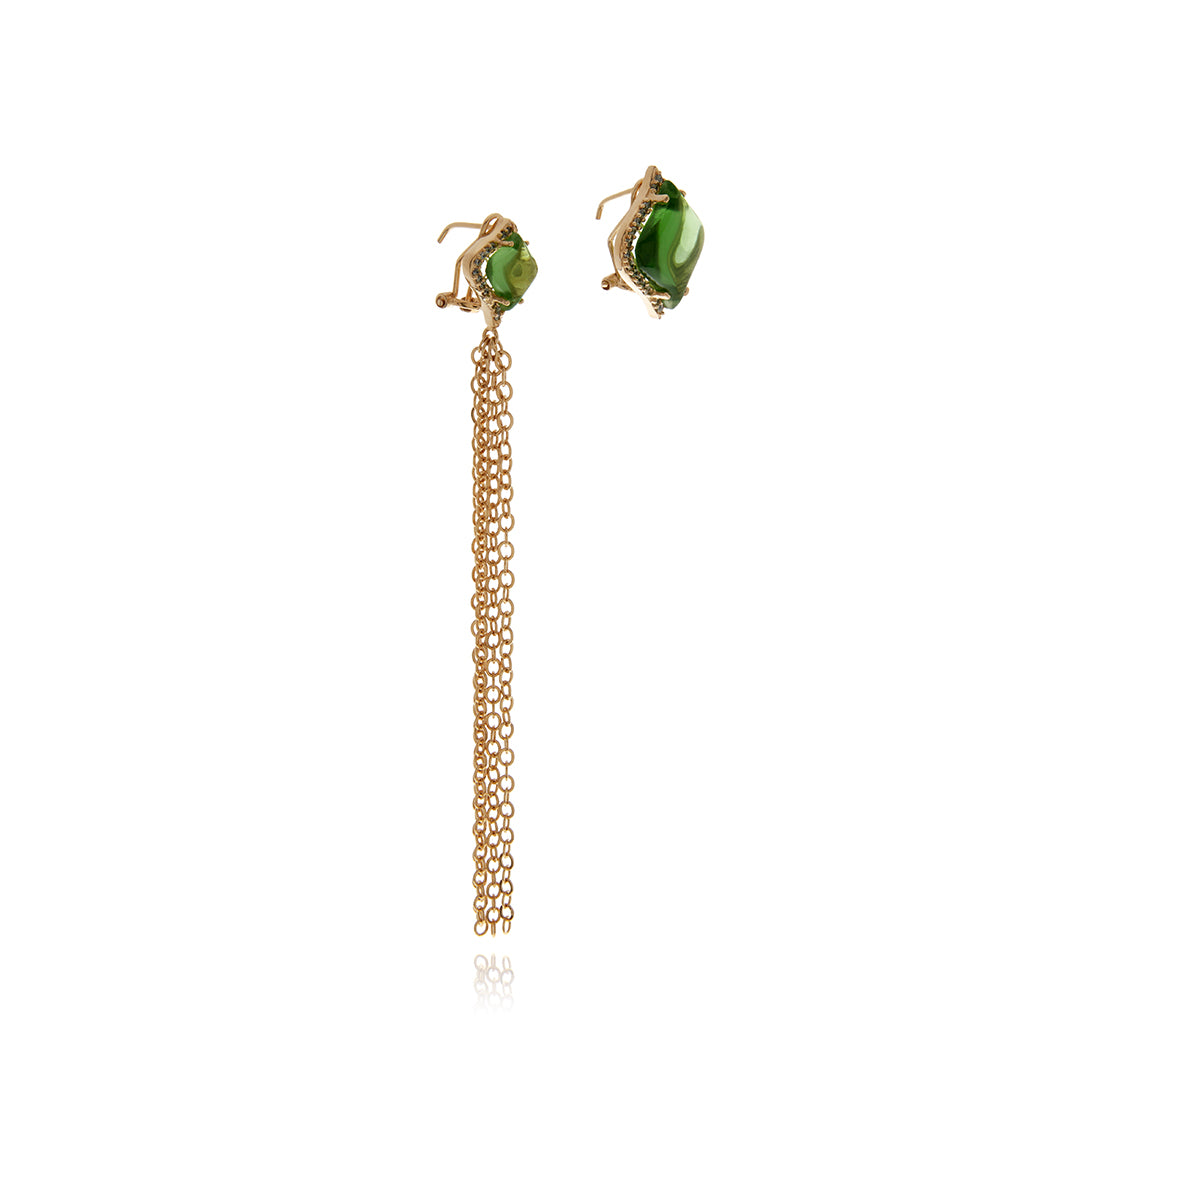 Signature Gold Crystal Earrings - MCK Brands